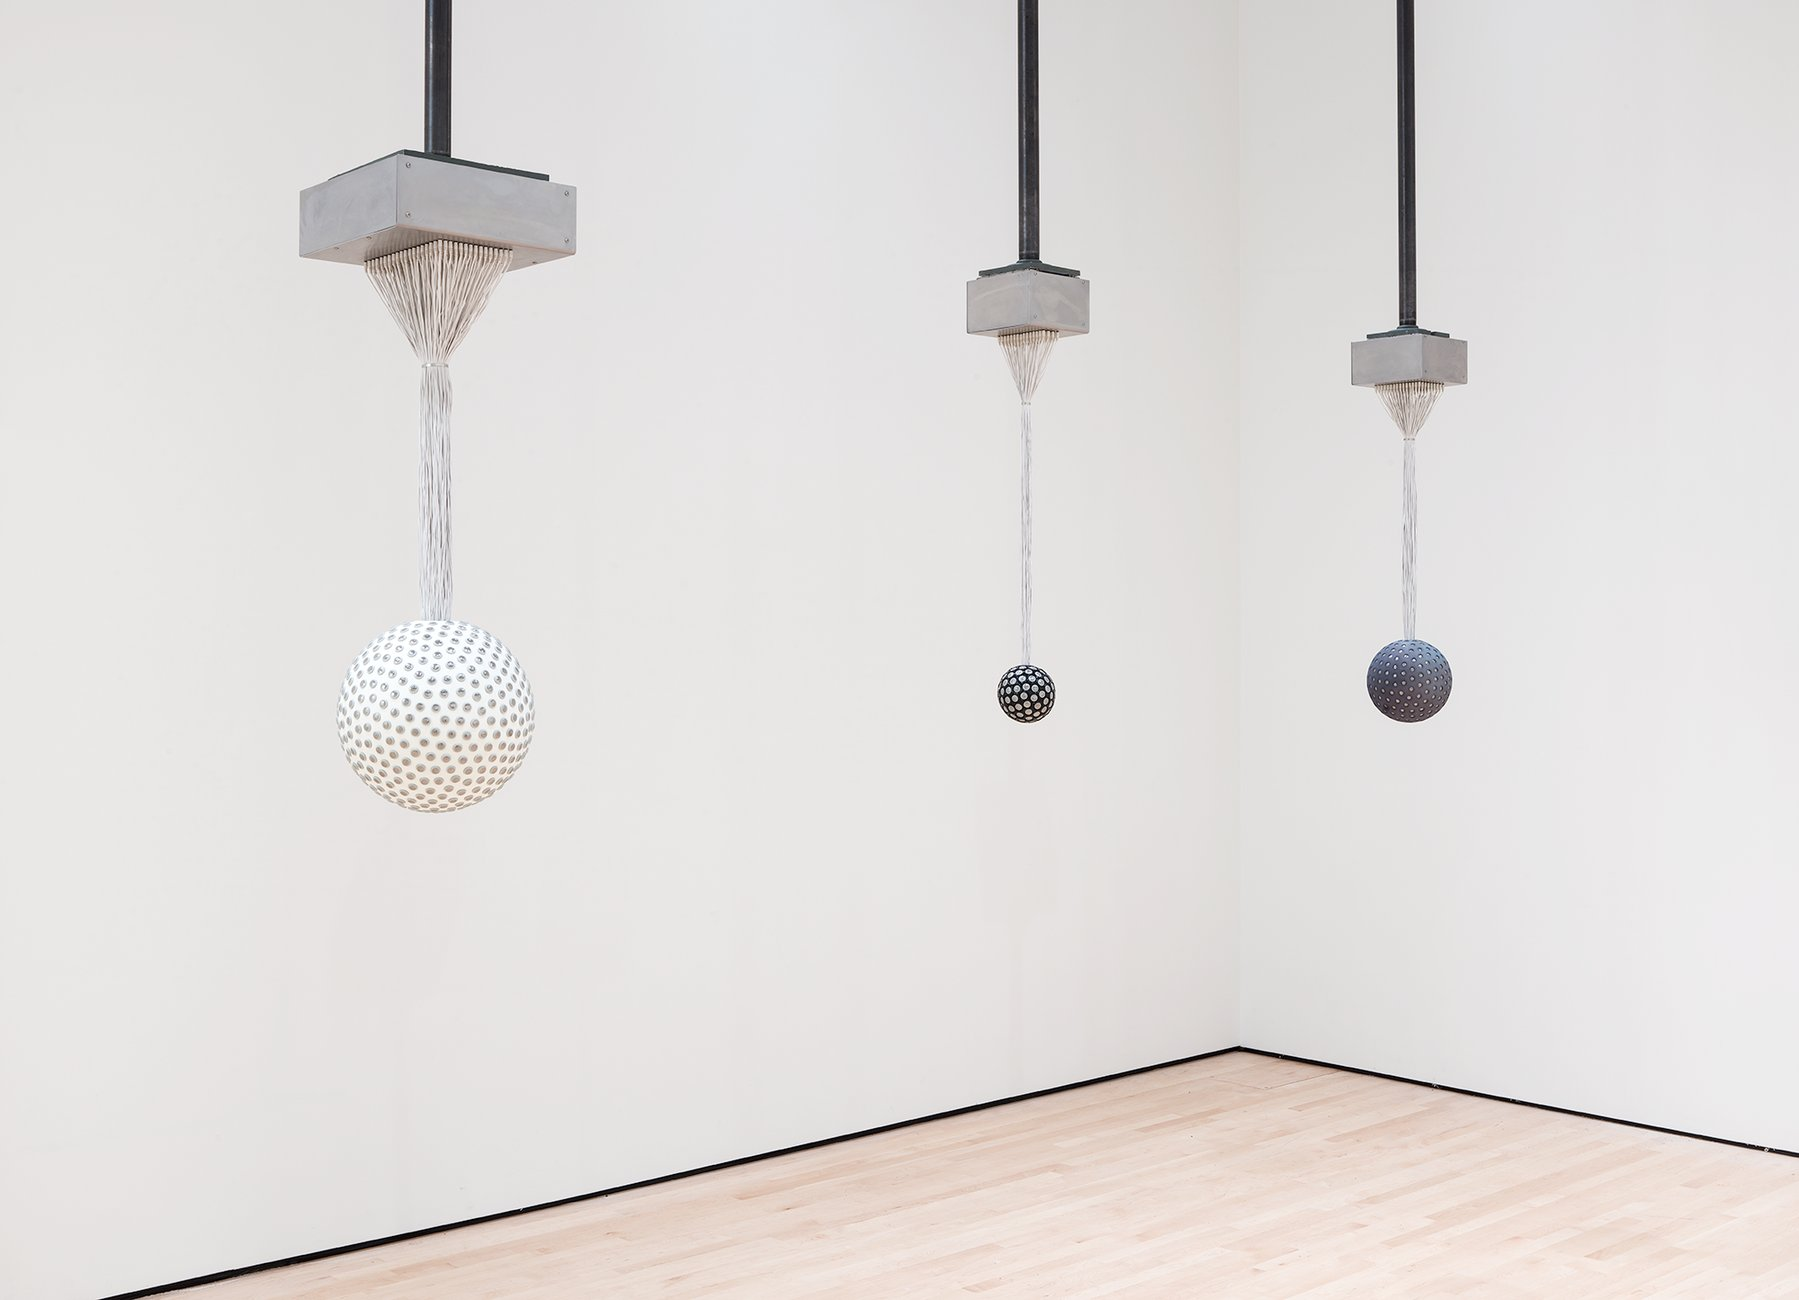 Three spheres are suspended from the ceiling by wires, Lozano_Hemmer, Soundtracks